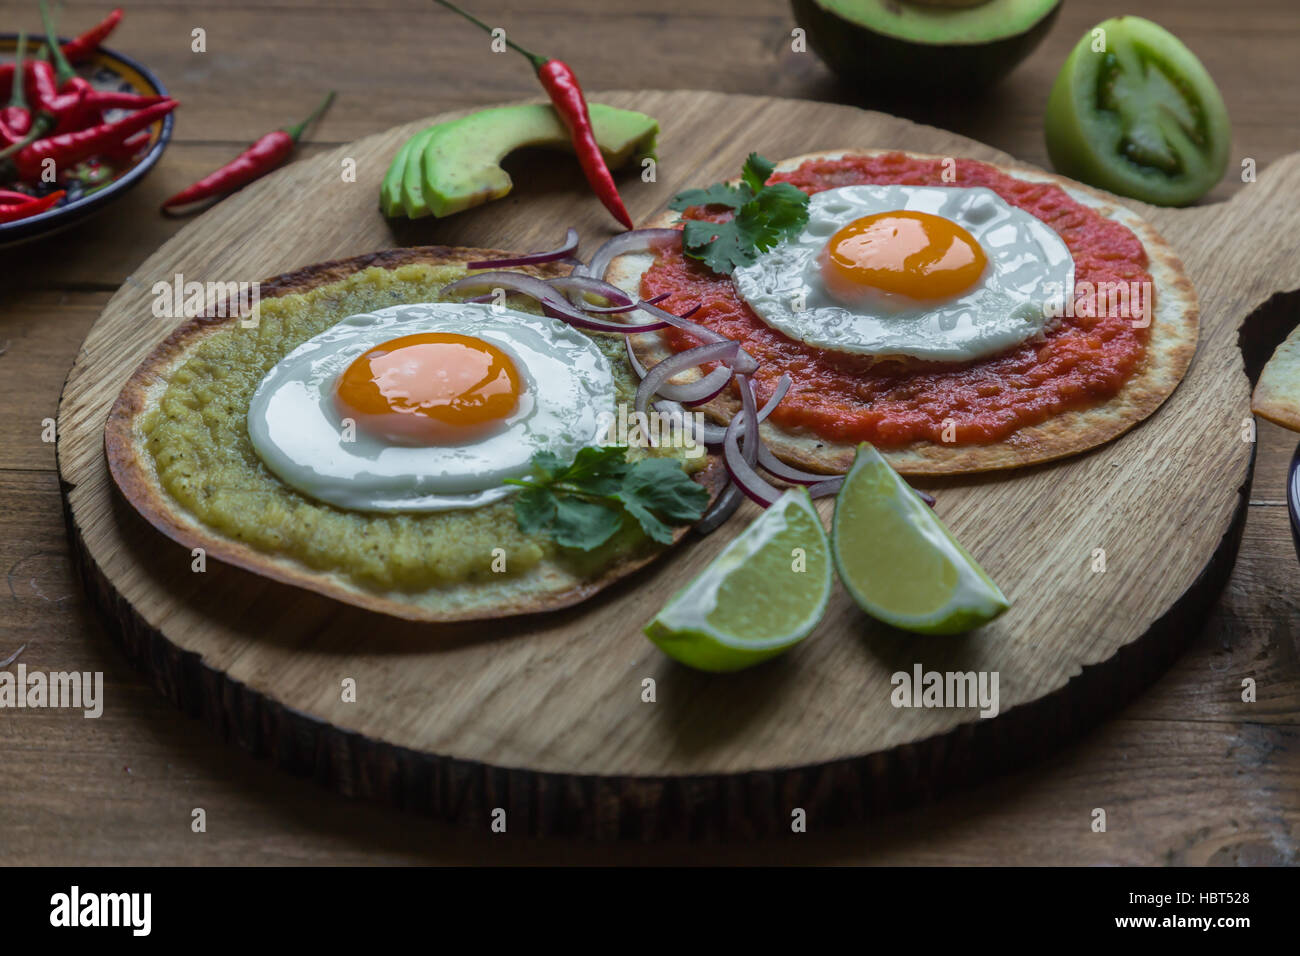 Variety of colorful mexican cuisine breakfast dishes on a wooden table Stock Photo